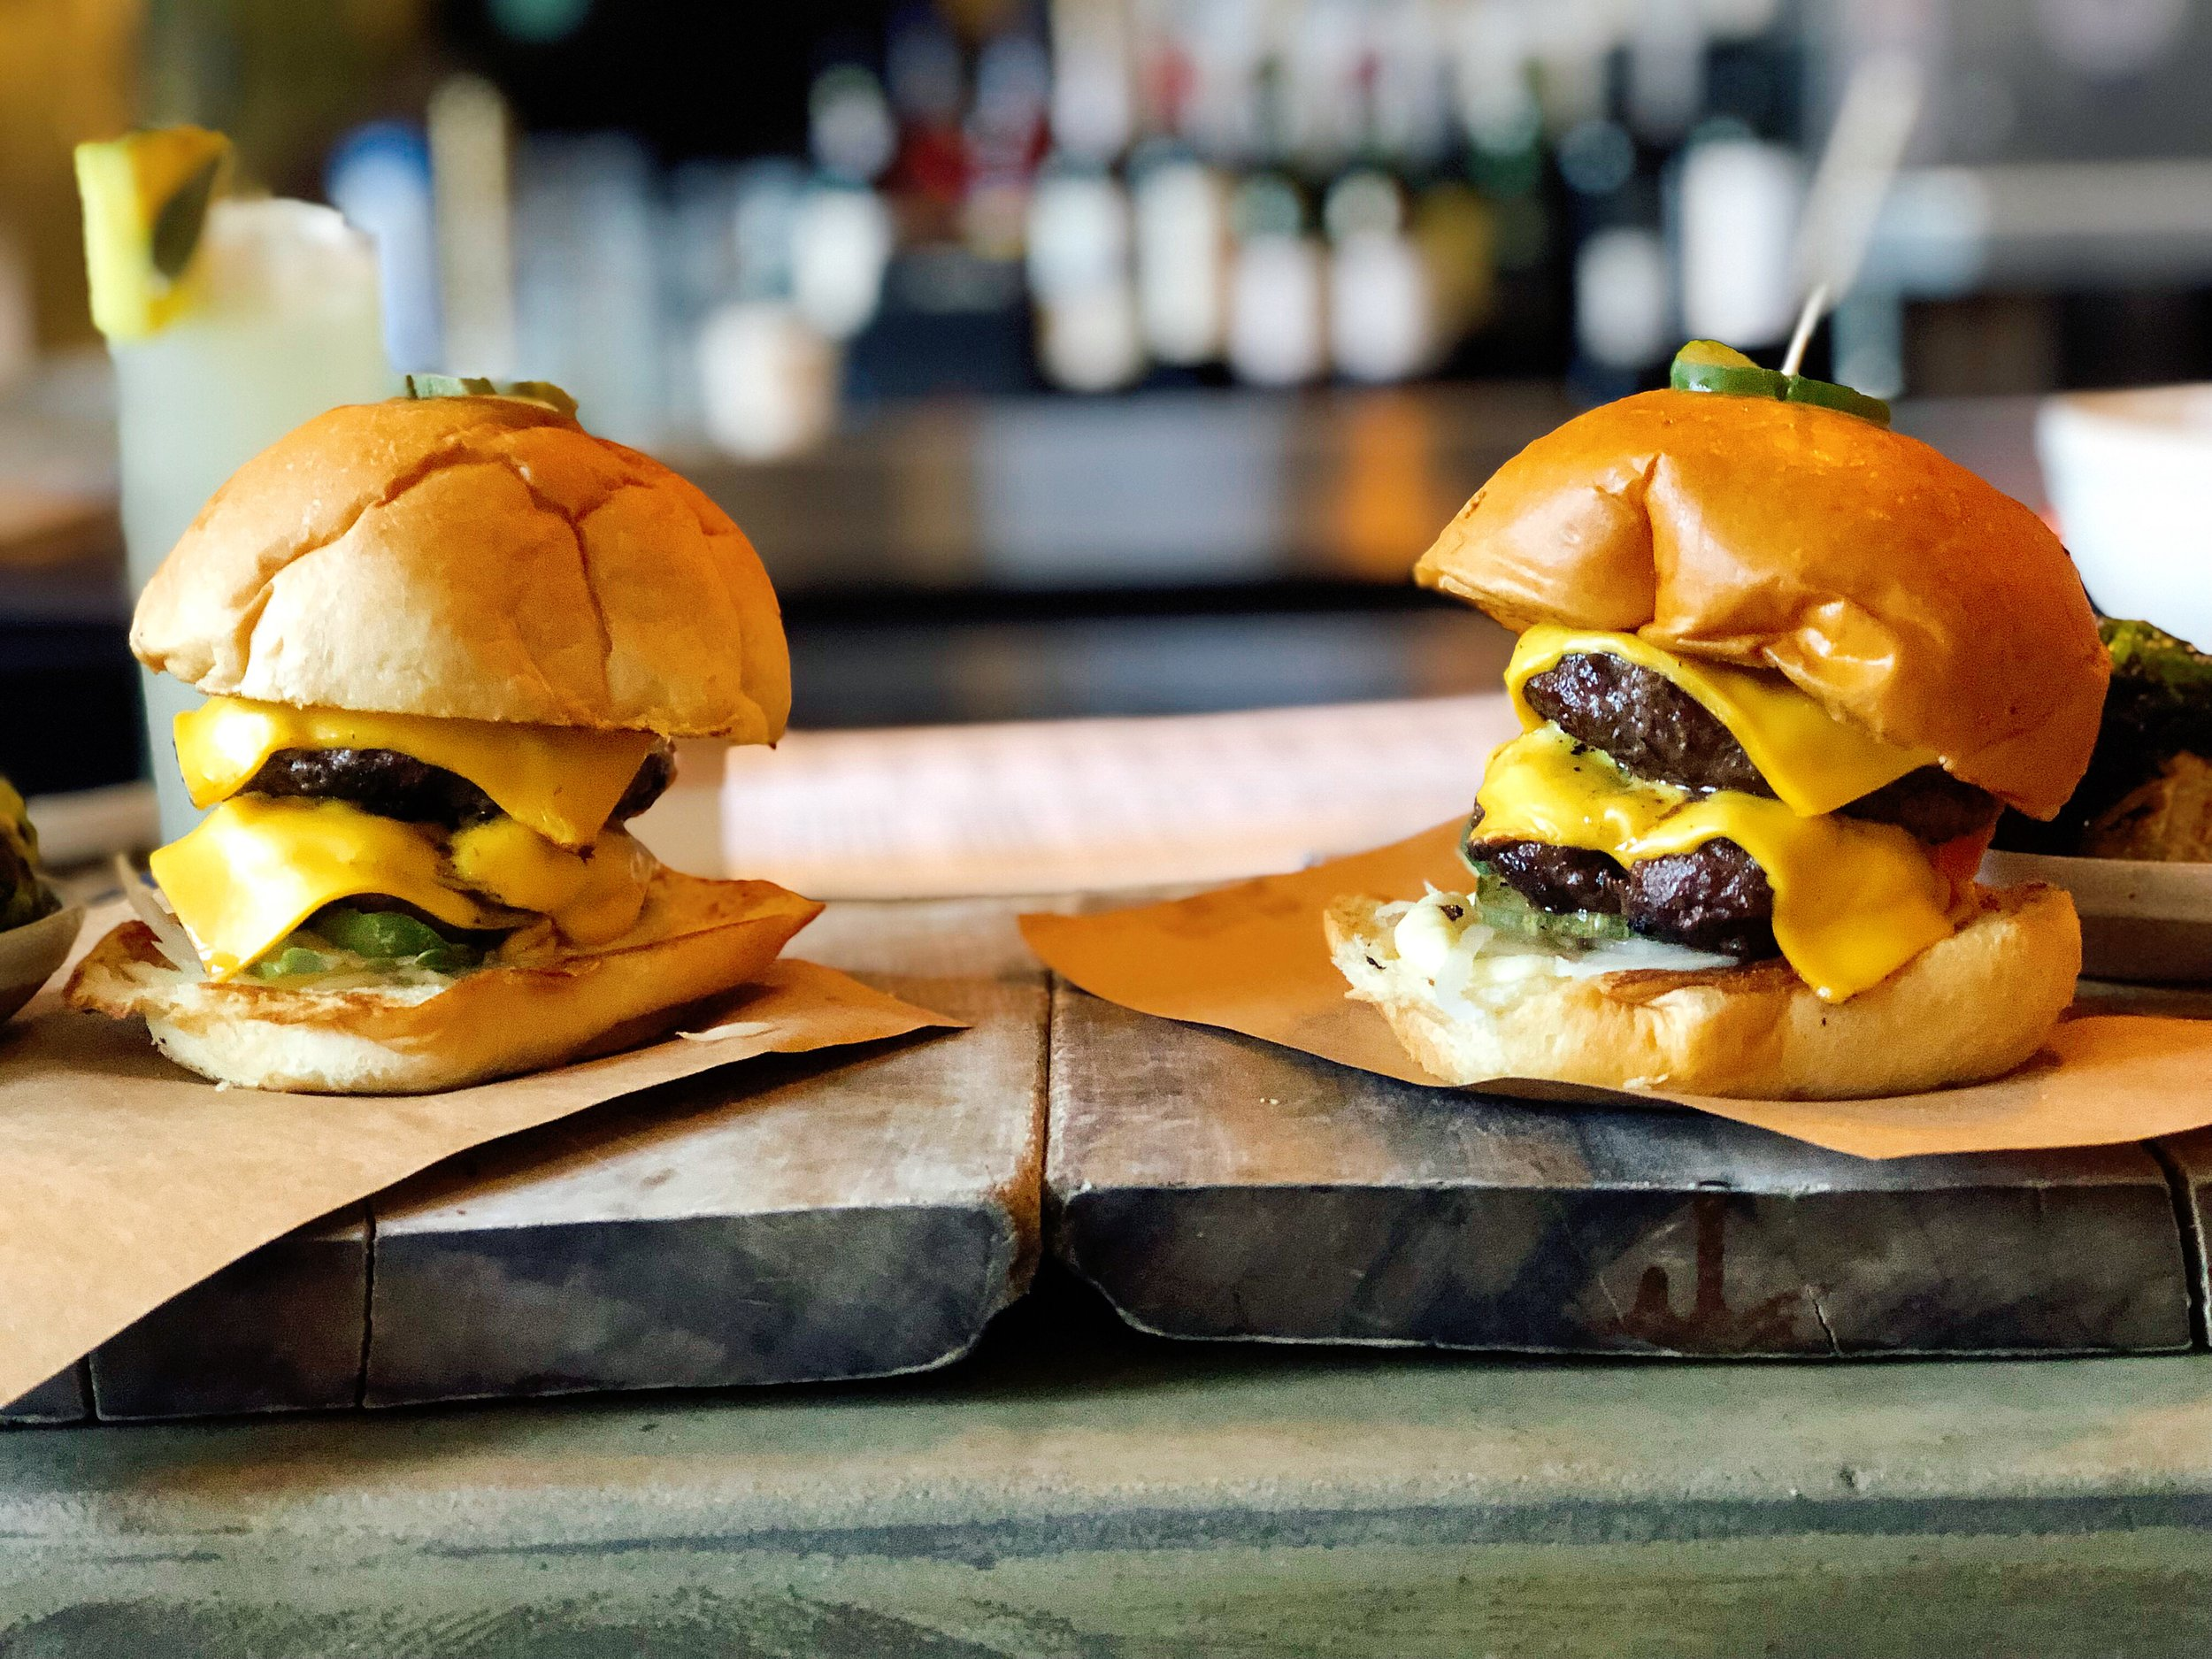 Double Brisket-Grind Burger | American Cheese + Pickles + Onion + Aioli